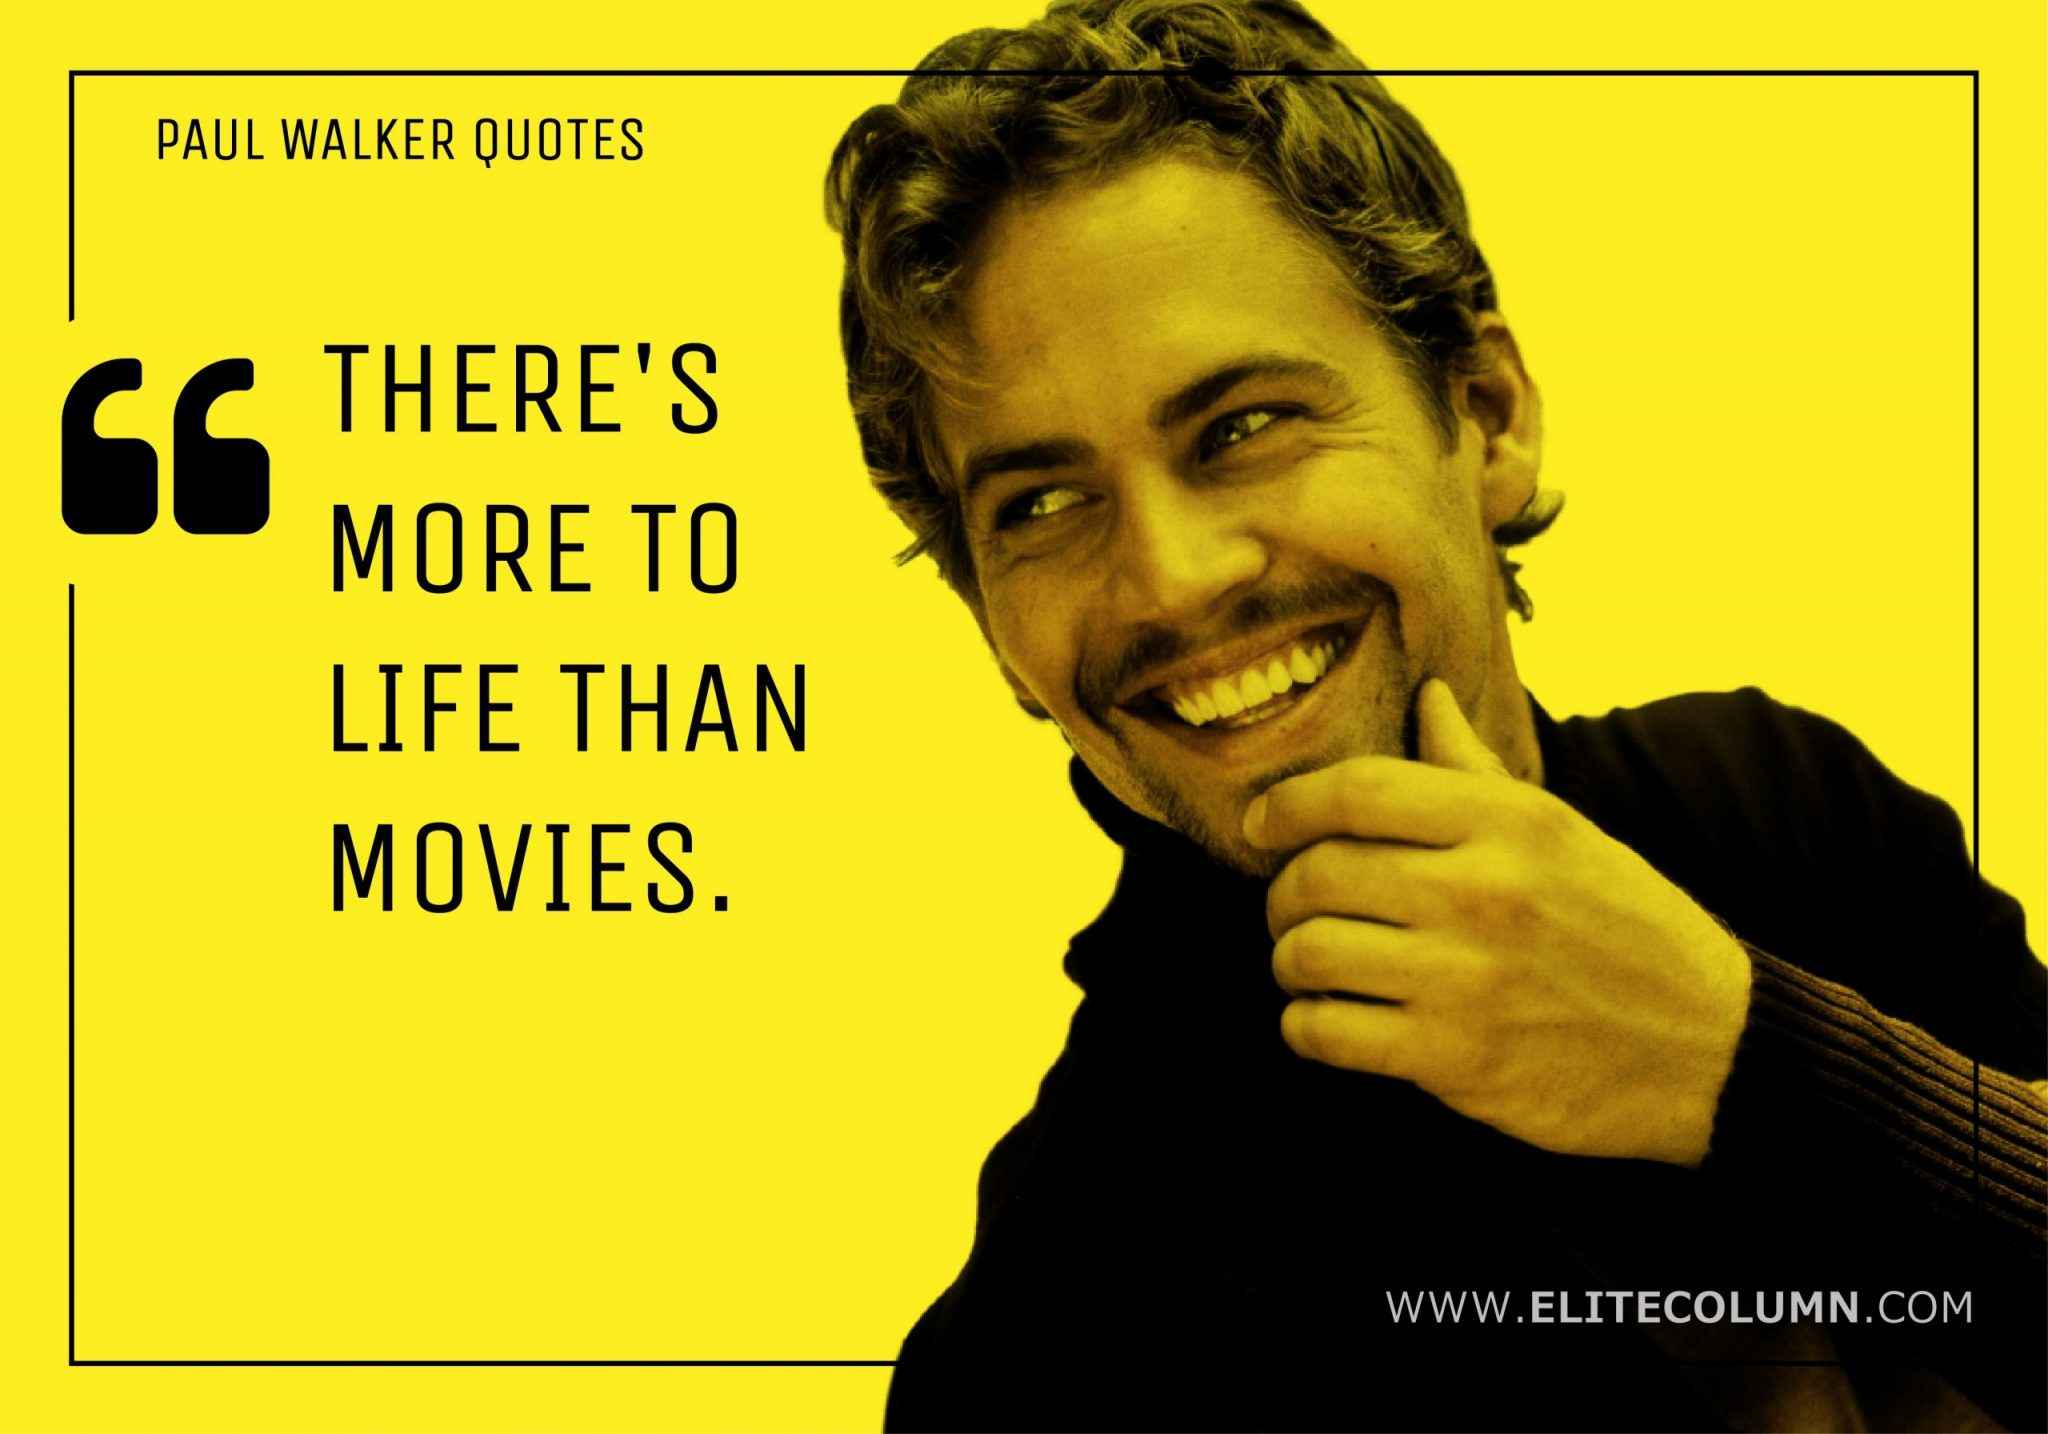 Paul Walker Quotes (8)